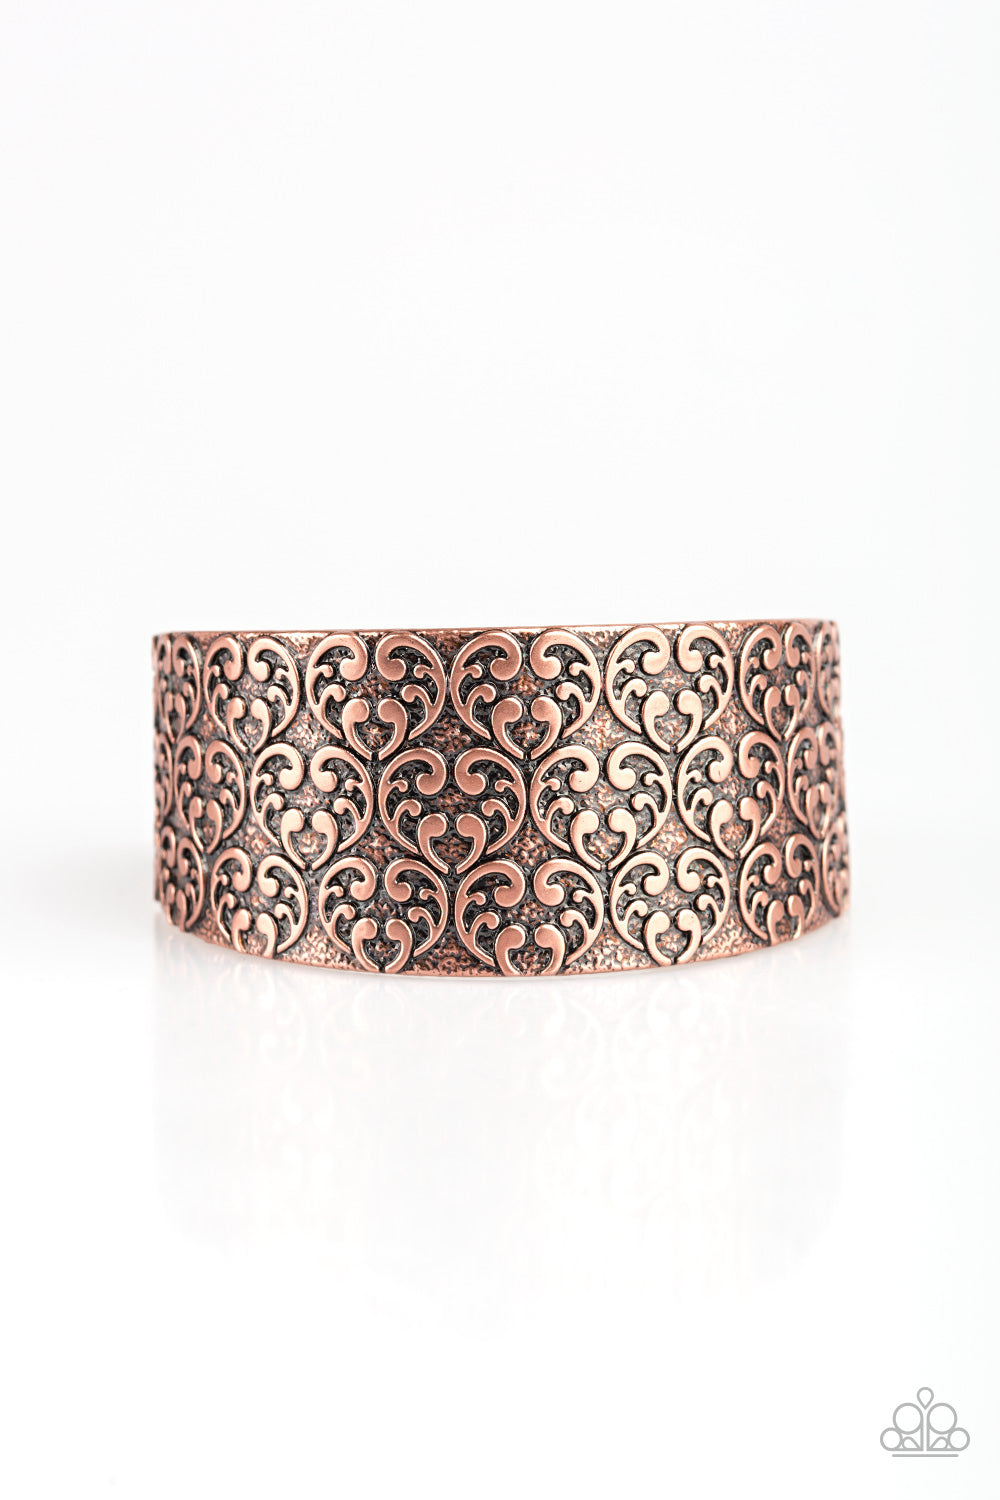 Paparazzi Accessories - Eat Your Heart Out - Copper Bracelet - JMJ Jewelry Collection